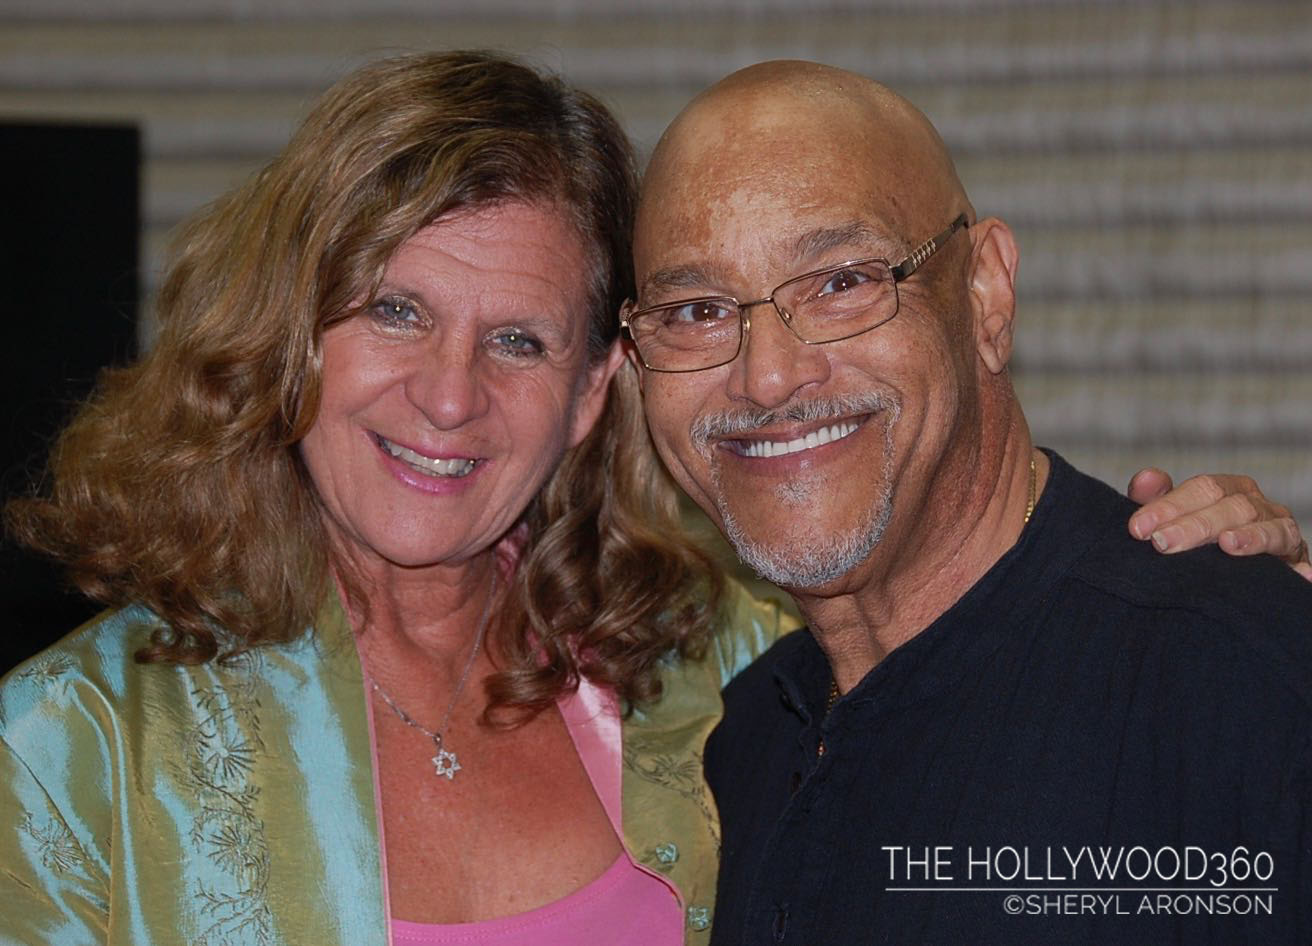 The Hollywood 360's Sheryl Aronson with Phil Perry